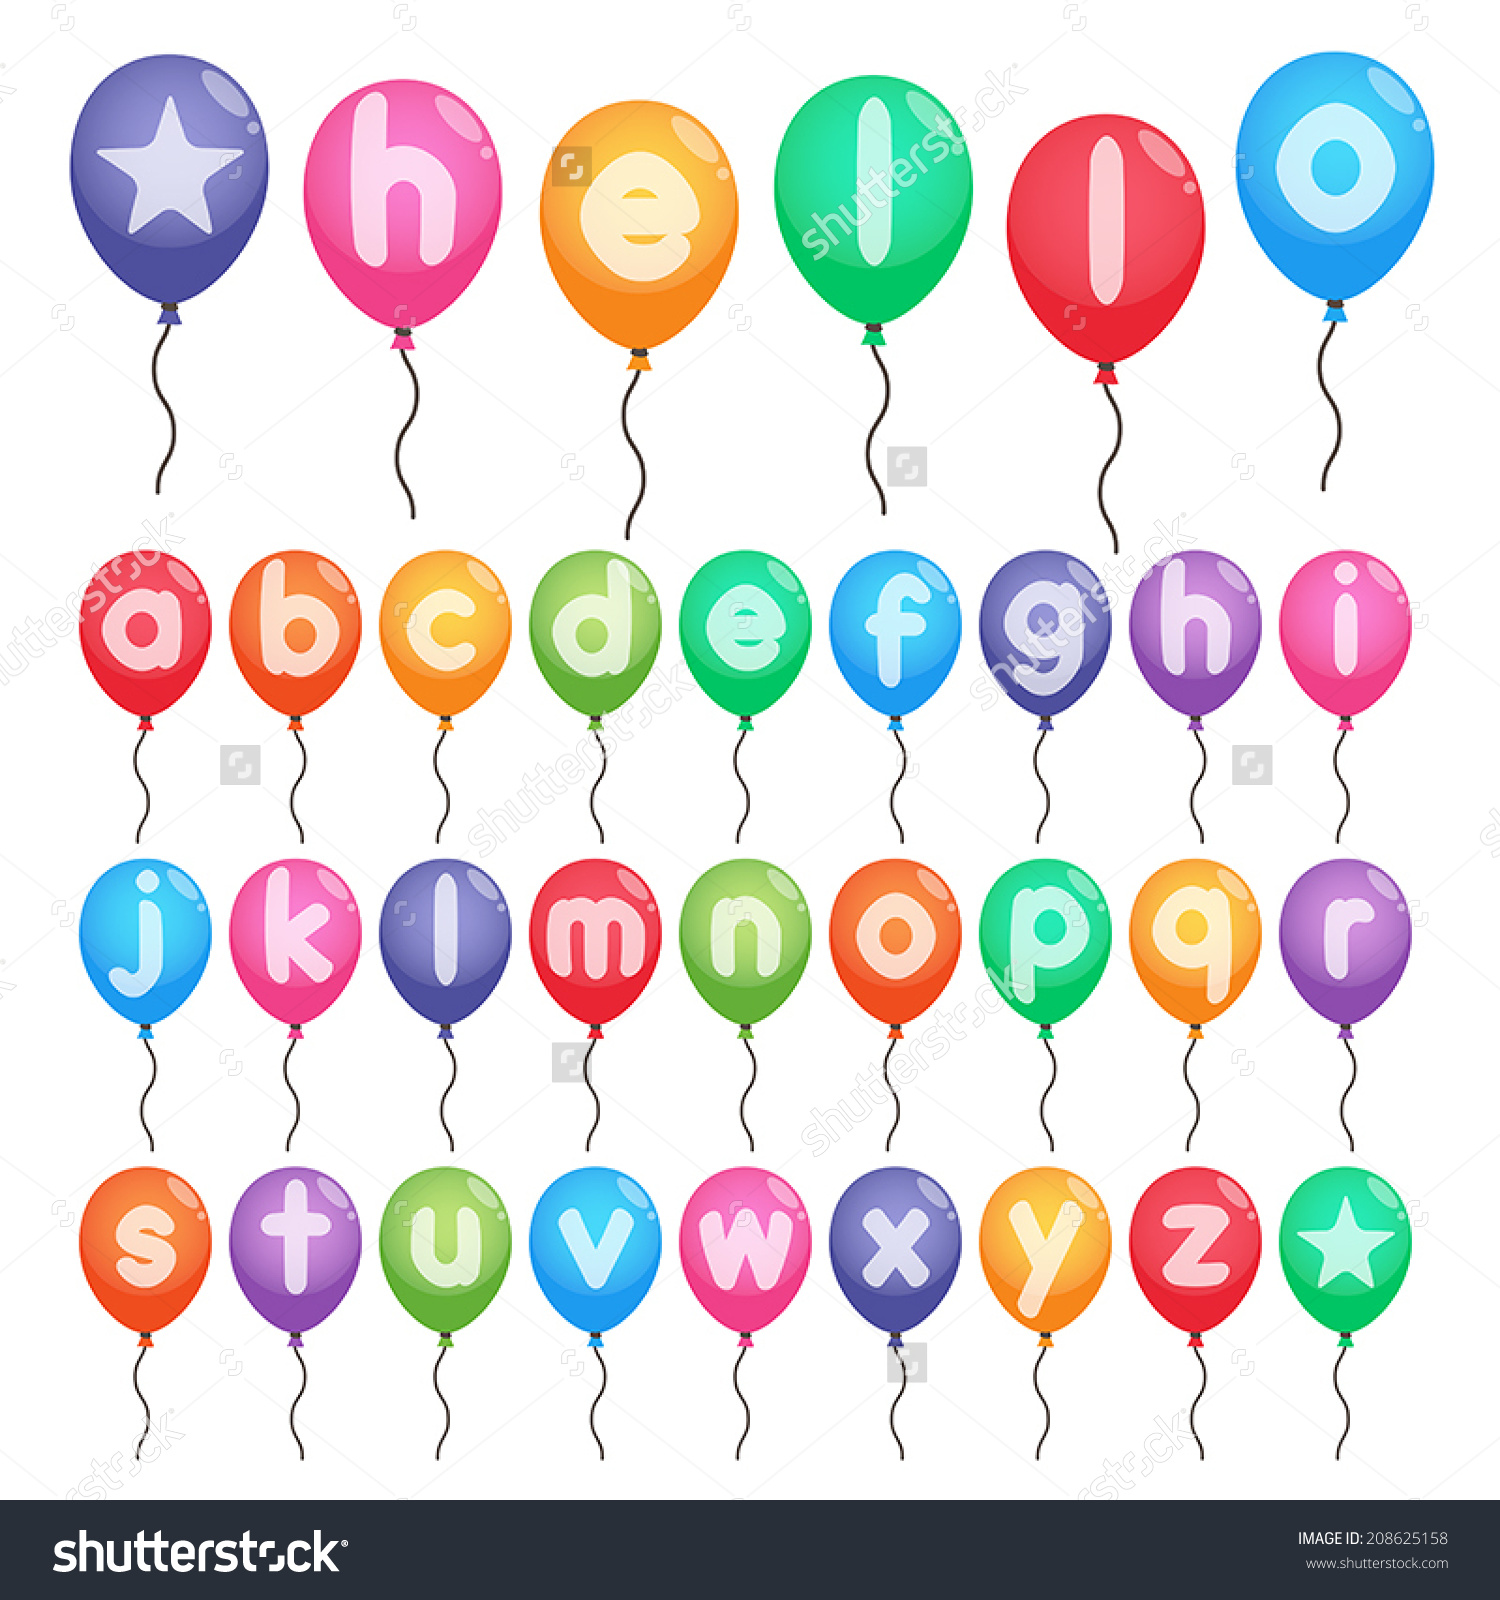 Small alphabet letter clipart banner freeuse download Colorful Small Alphabet Letters Z Balloons Stock Vector 208625158 ... banner freeuse download